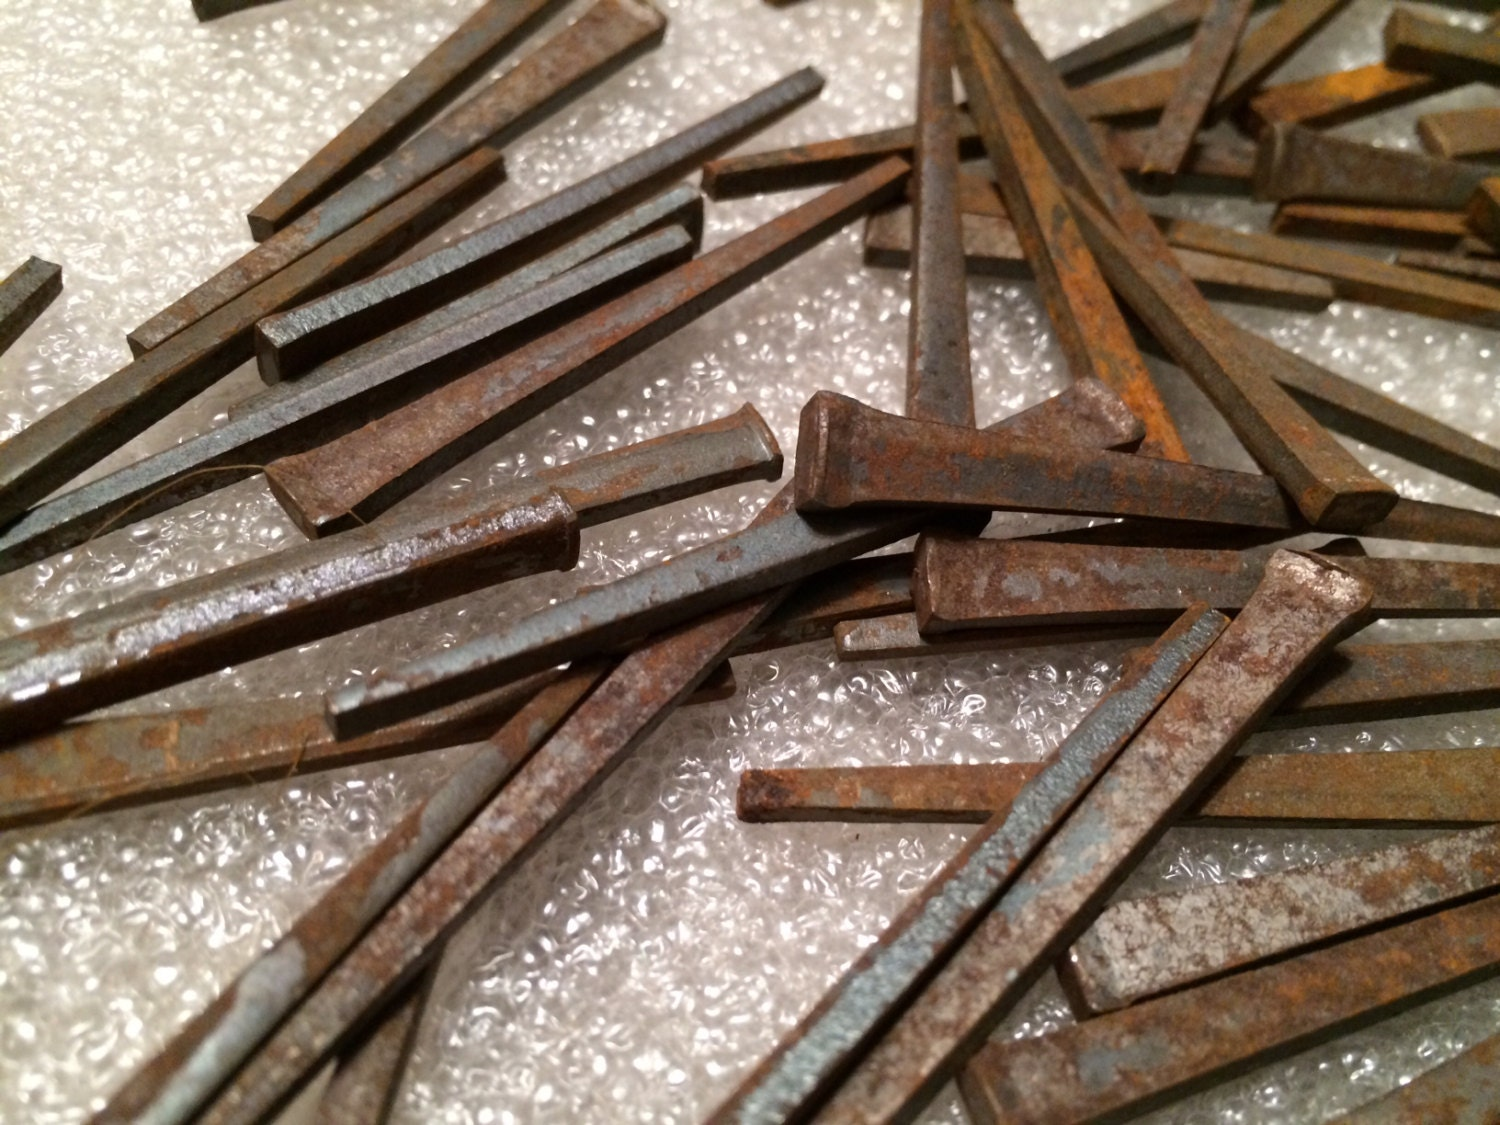 Vintage Square Cut Nails Nail 1 5 Lb Pound Rustic